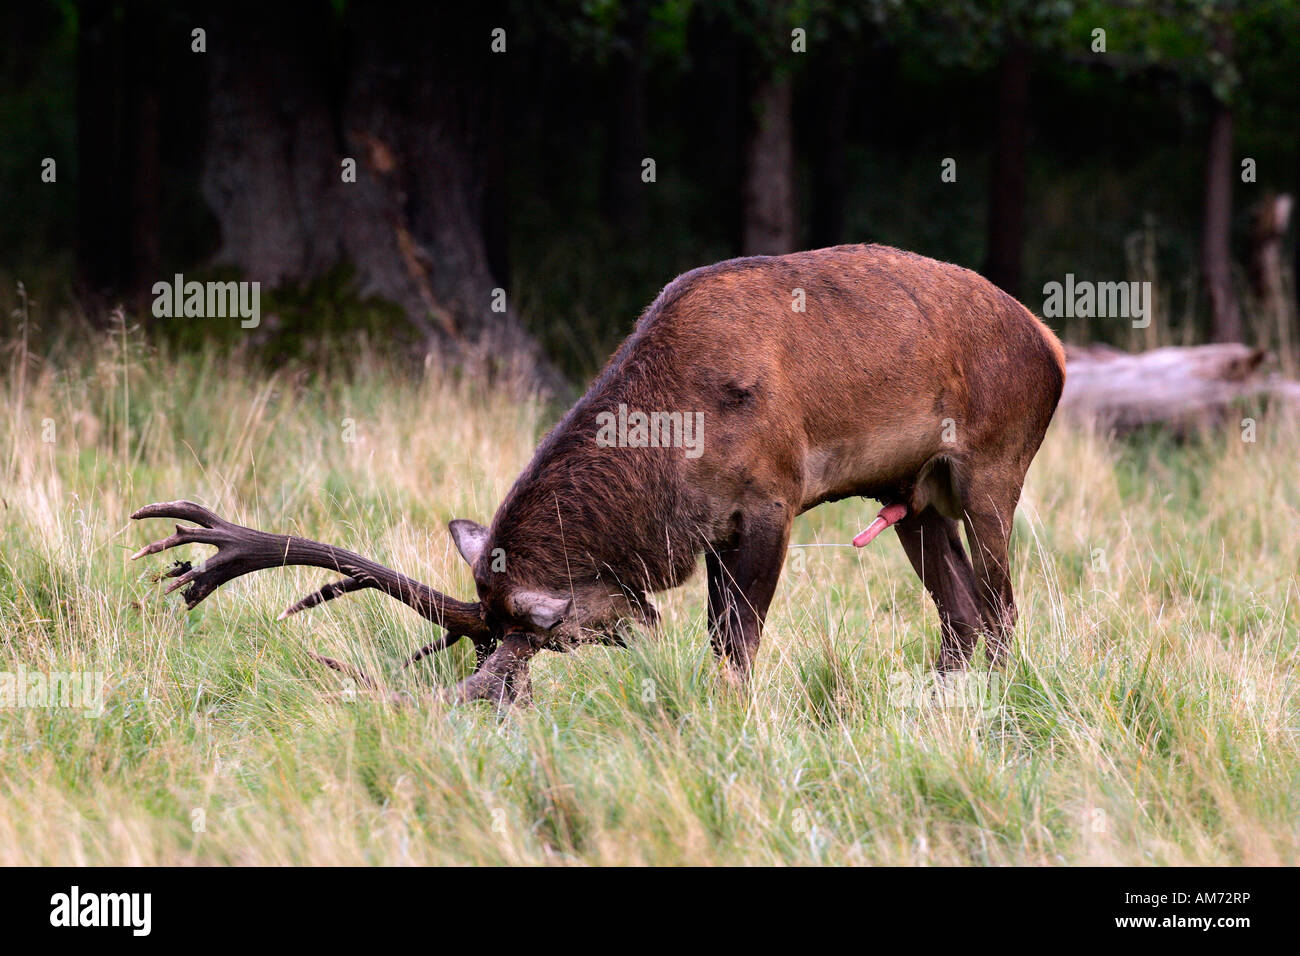 Red stag during the rut - red deer in heat - male - behaviour (Cervus elaphus) Stock Photo